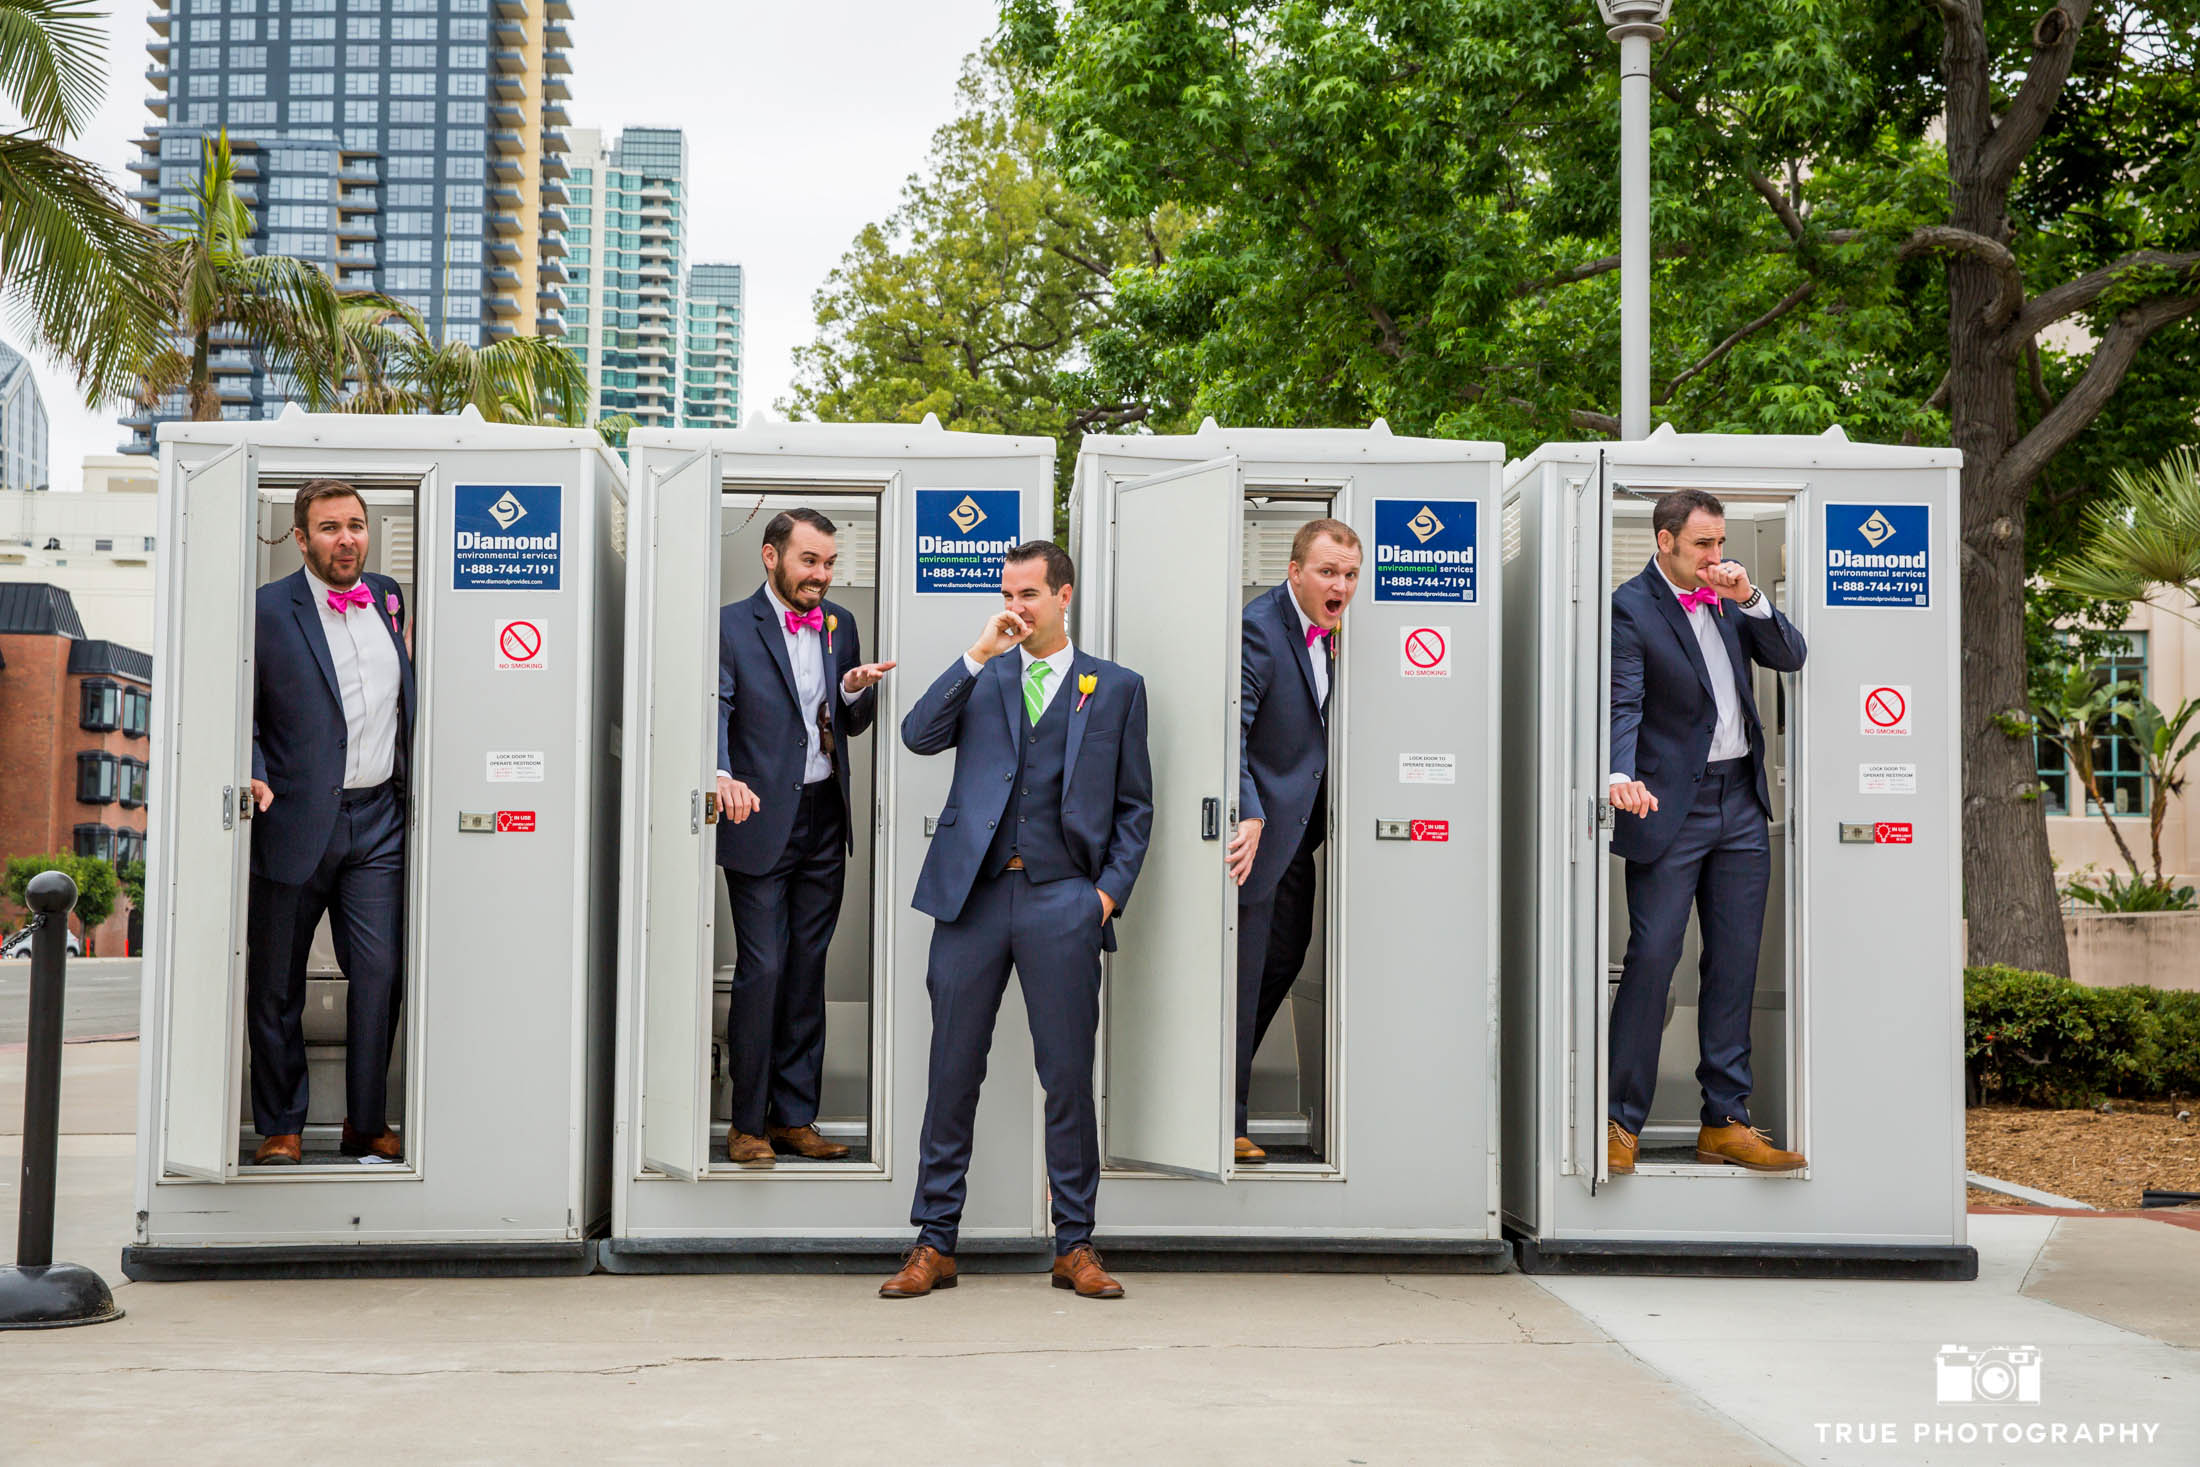 Groomsmen having some fun with the Porta Potties